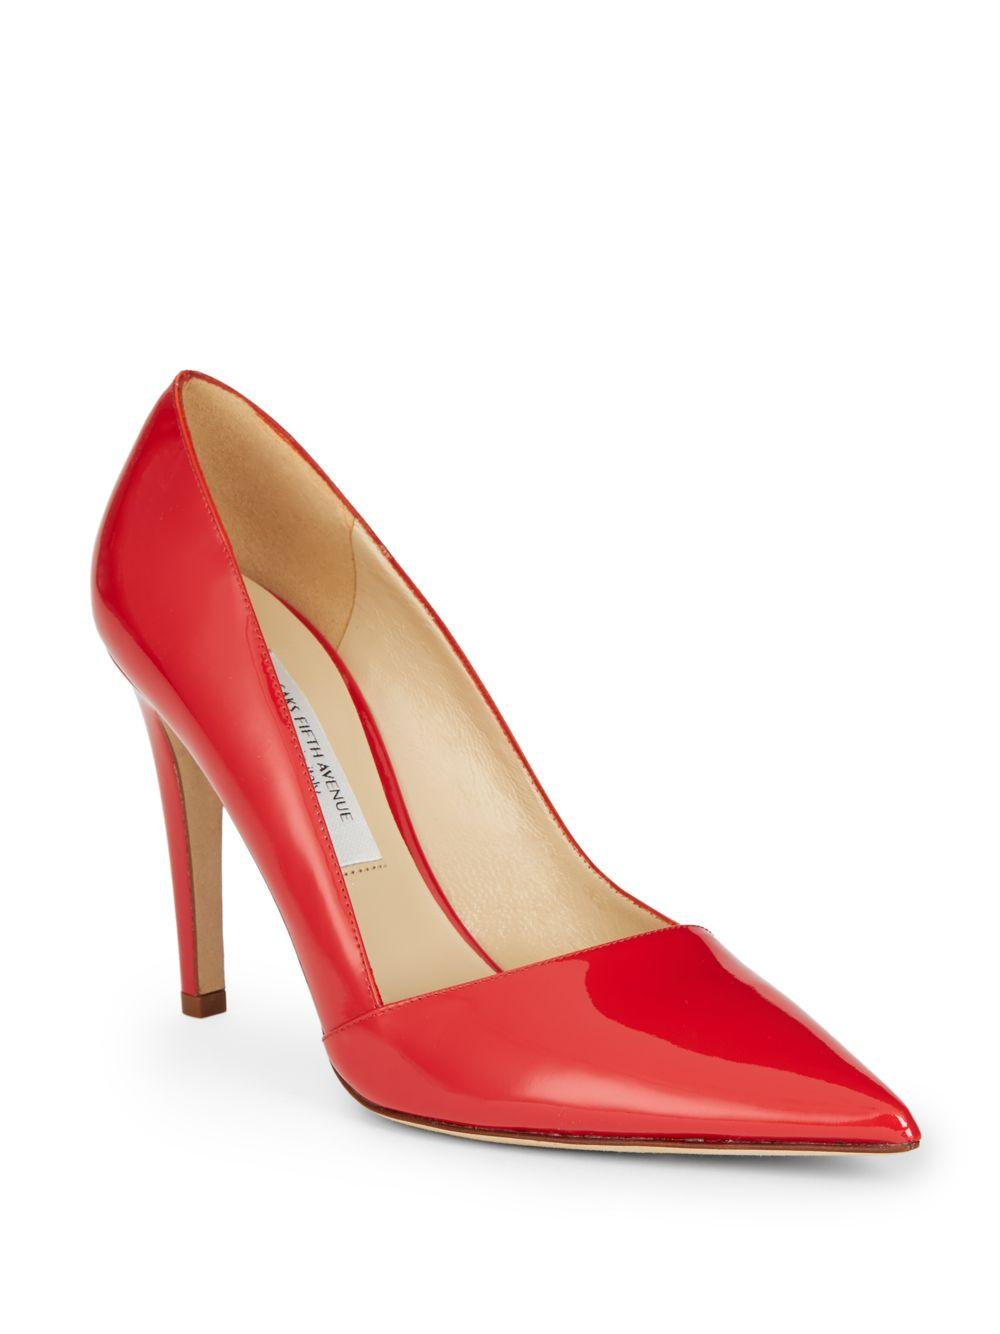 Saks Red Label Shoes